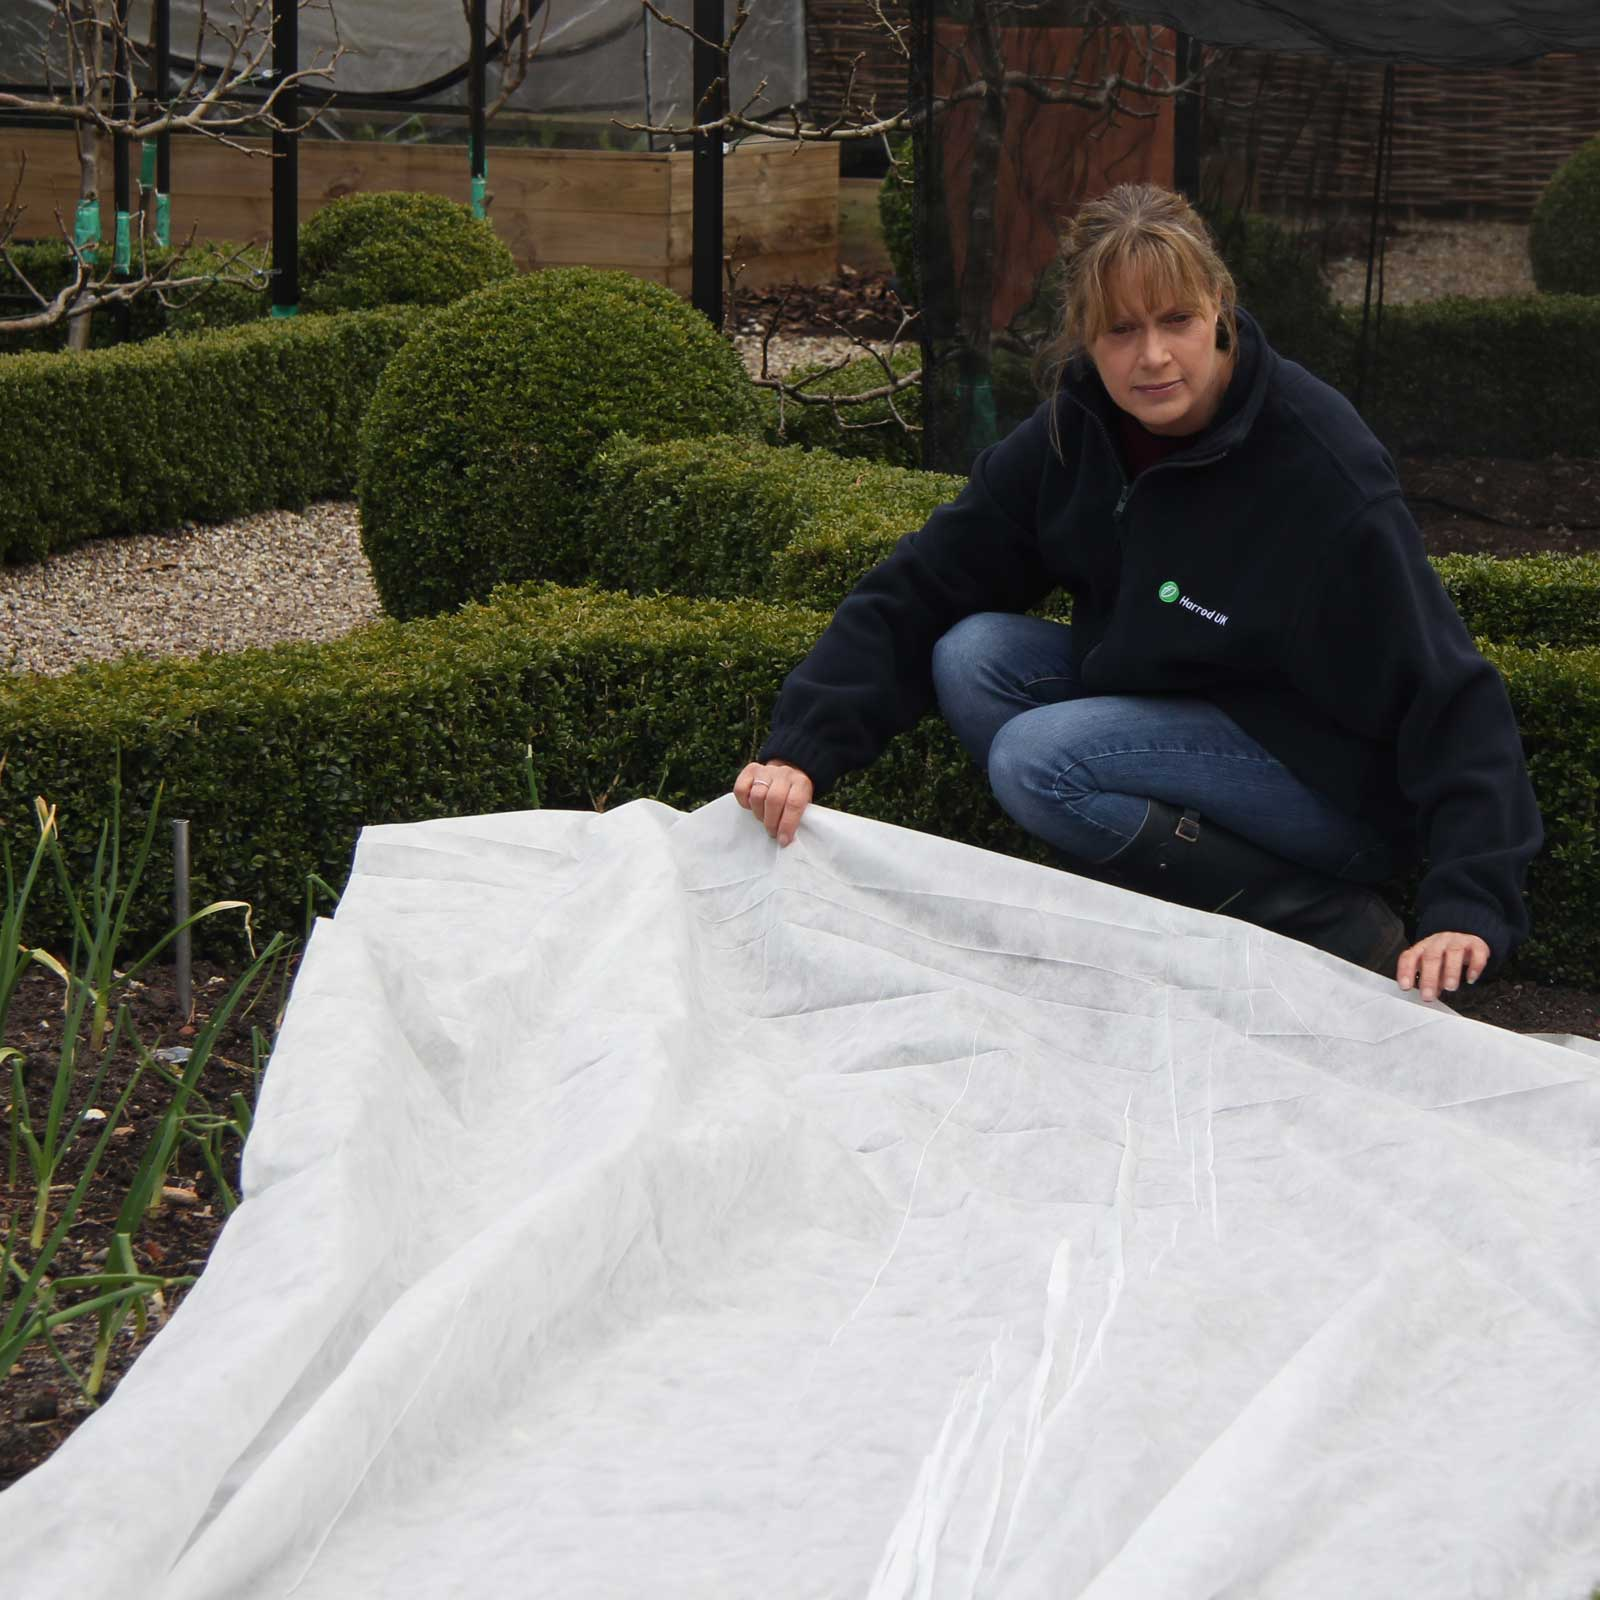 Frost Winter Plant ProtectionGarden Fleece for Plants //// FAST UK DESPATCH